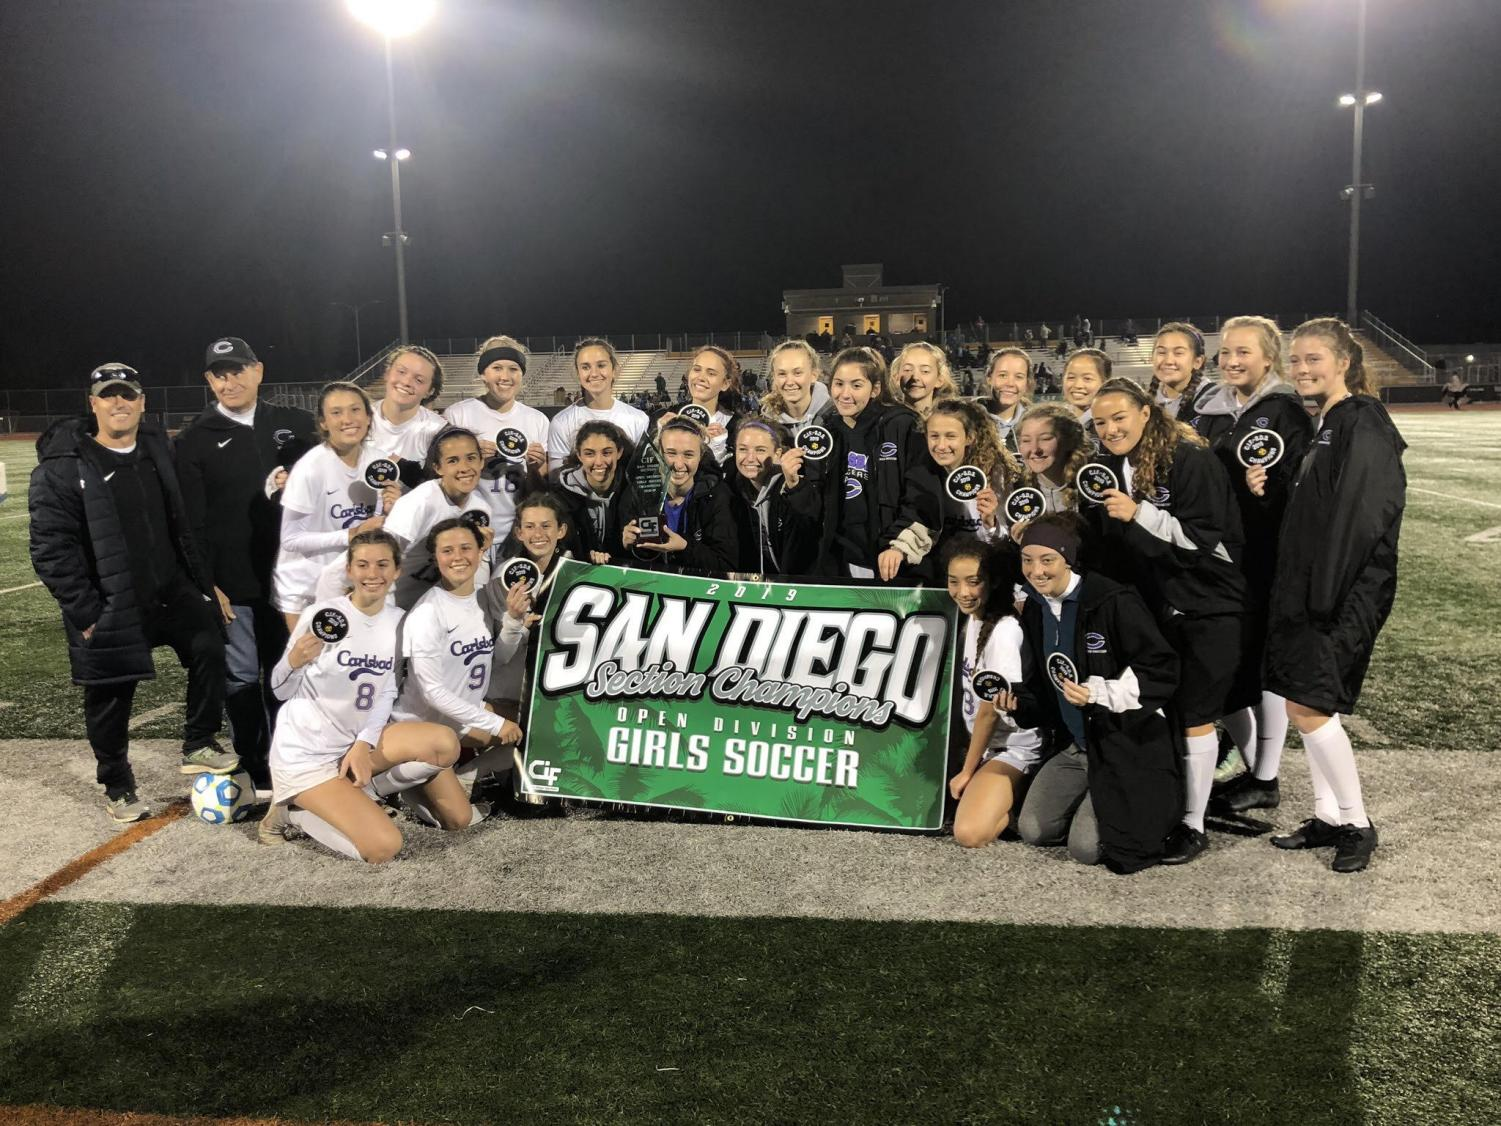 Varisty girls soccer poses with their Open Division trophy and banner. The game finished 1-0 Lancers with a goal from sophomore Lexi Wright in the second half.